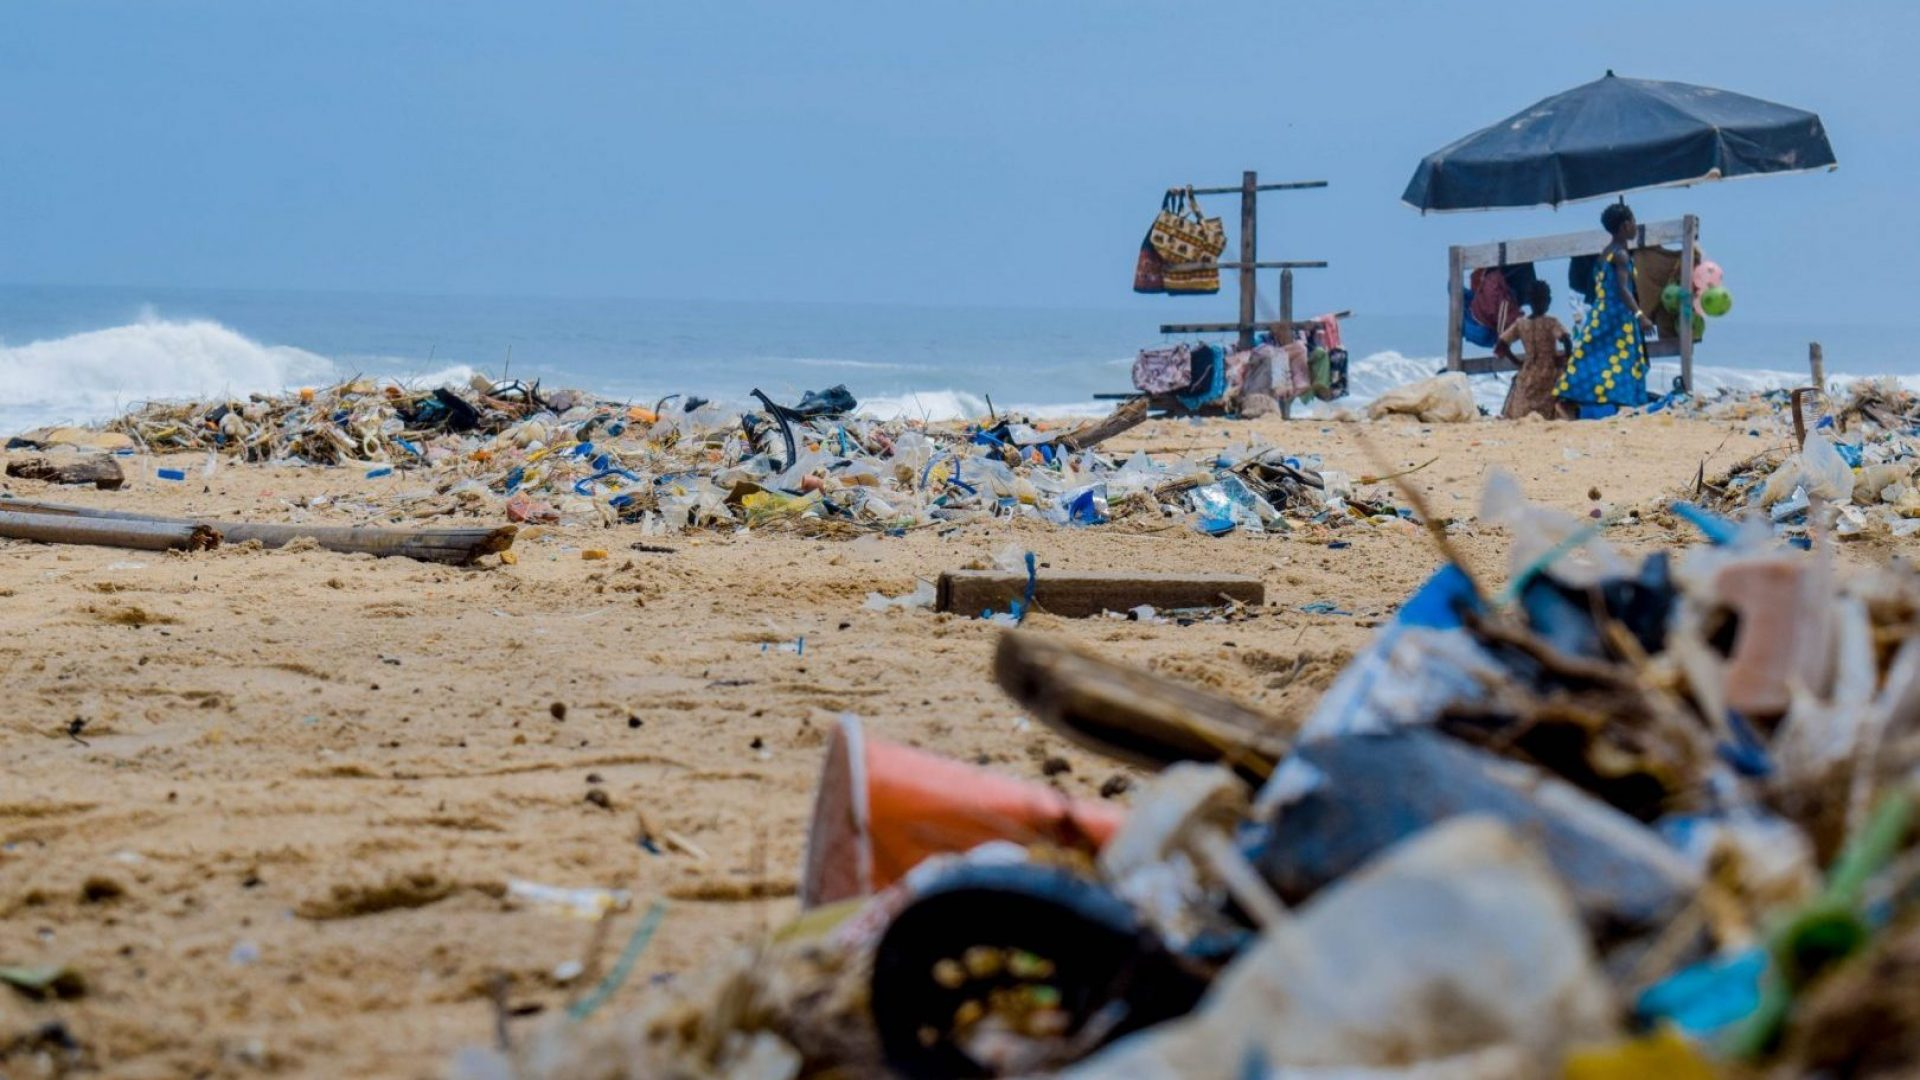 Lost at sea: Our ocean's plastics pollution problem